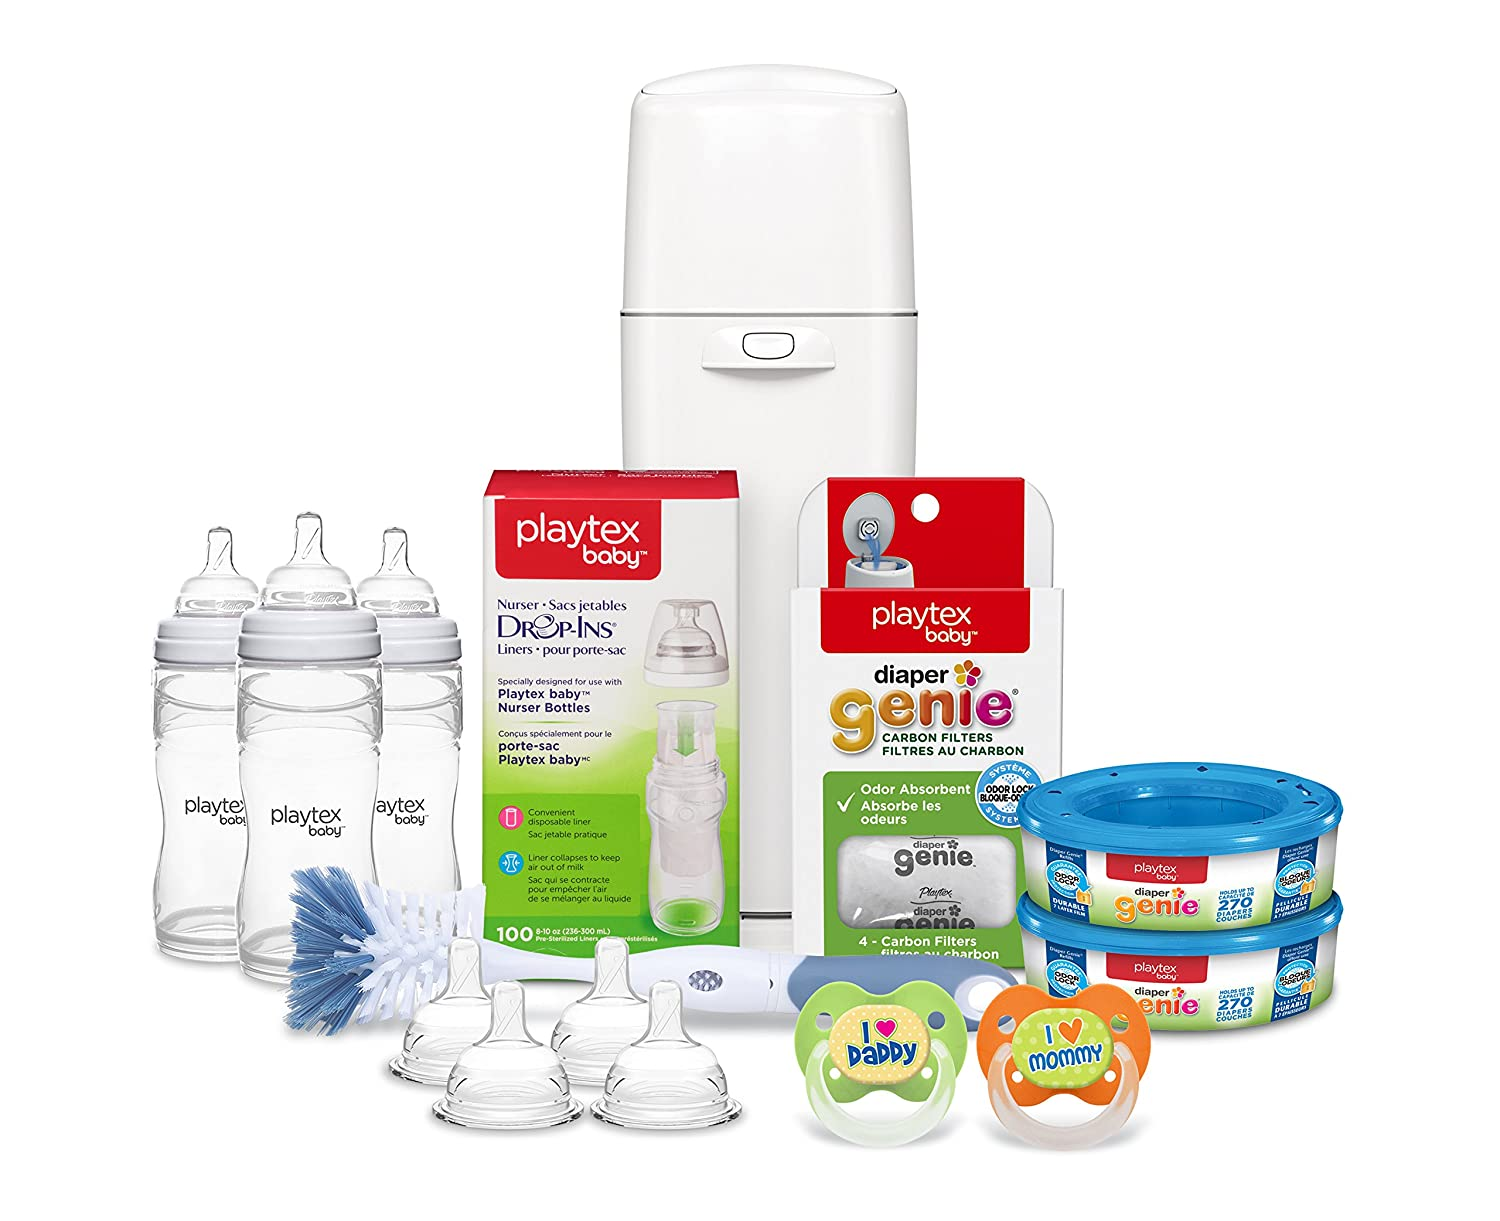 Playtex Baby Diaper Genie Gift Set with a Diaper Genie Diaper Pail, (2)Diaper Genie Refill, Carbon Filters, (3)Playtex Nurser Baby Bottles, Bottle Liners, Bottle Nipples, Bottle Brush, and Pacifiers 10078300026225